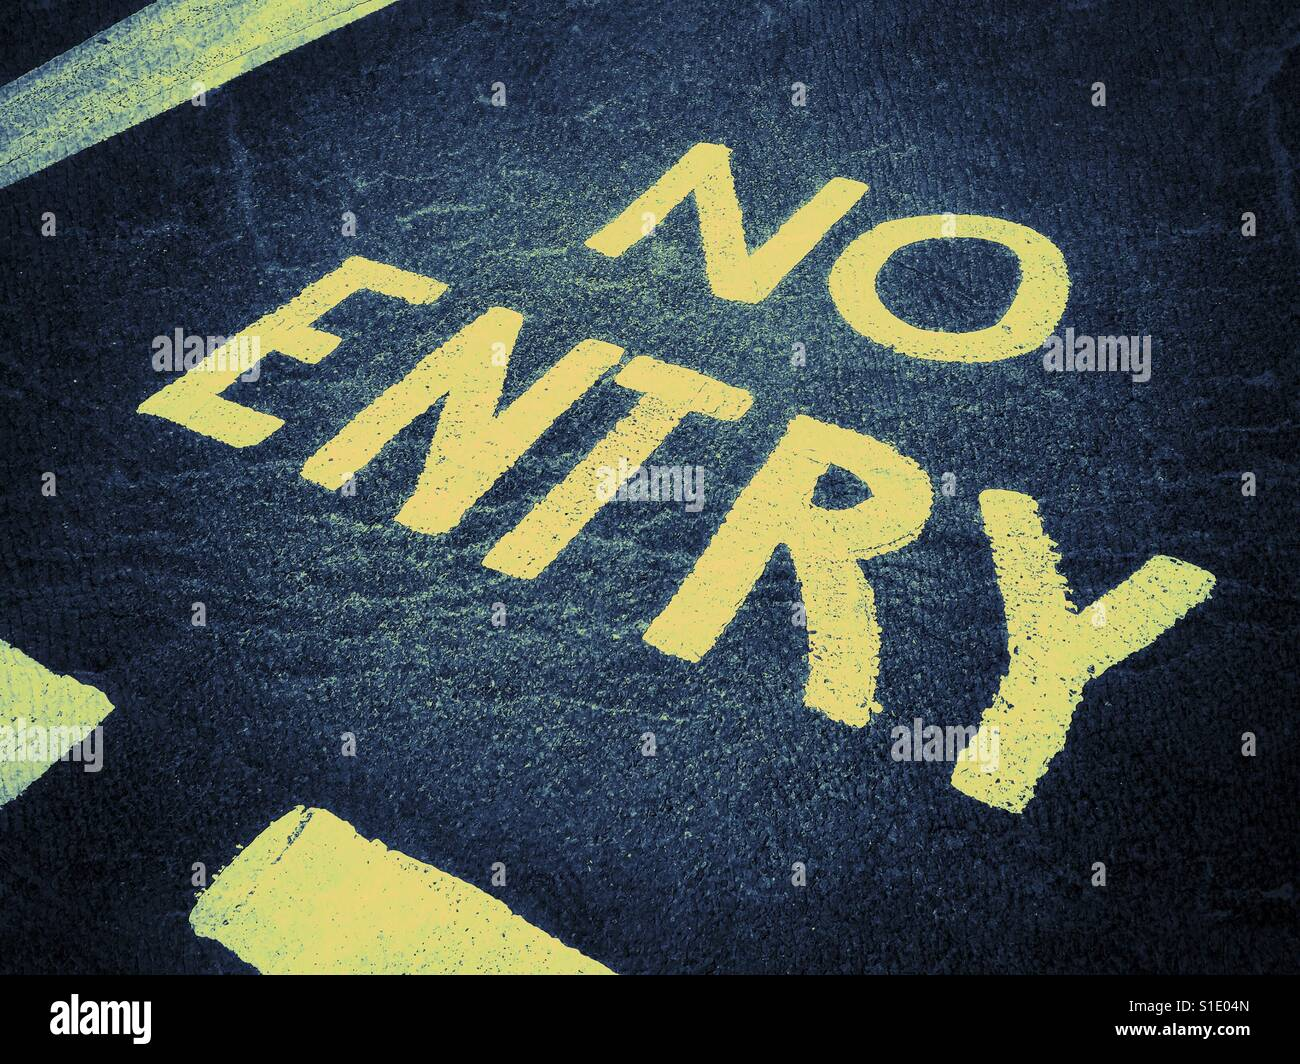 NO ENTRY. Words painted on a road instructing motorists, cyclists, buses and travellers they are not permitted to - Stock Image